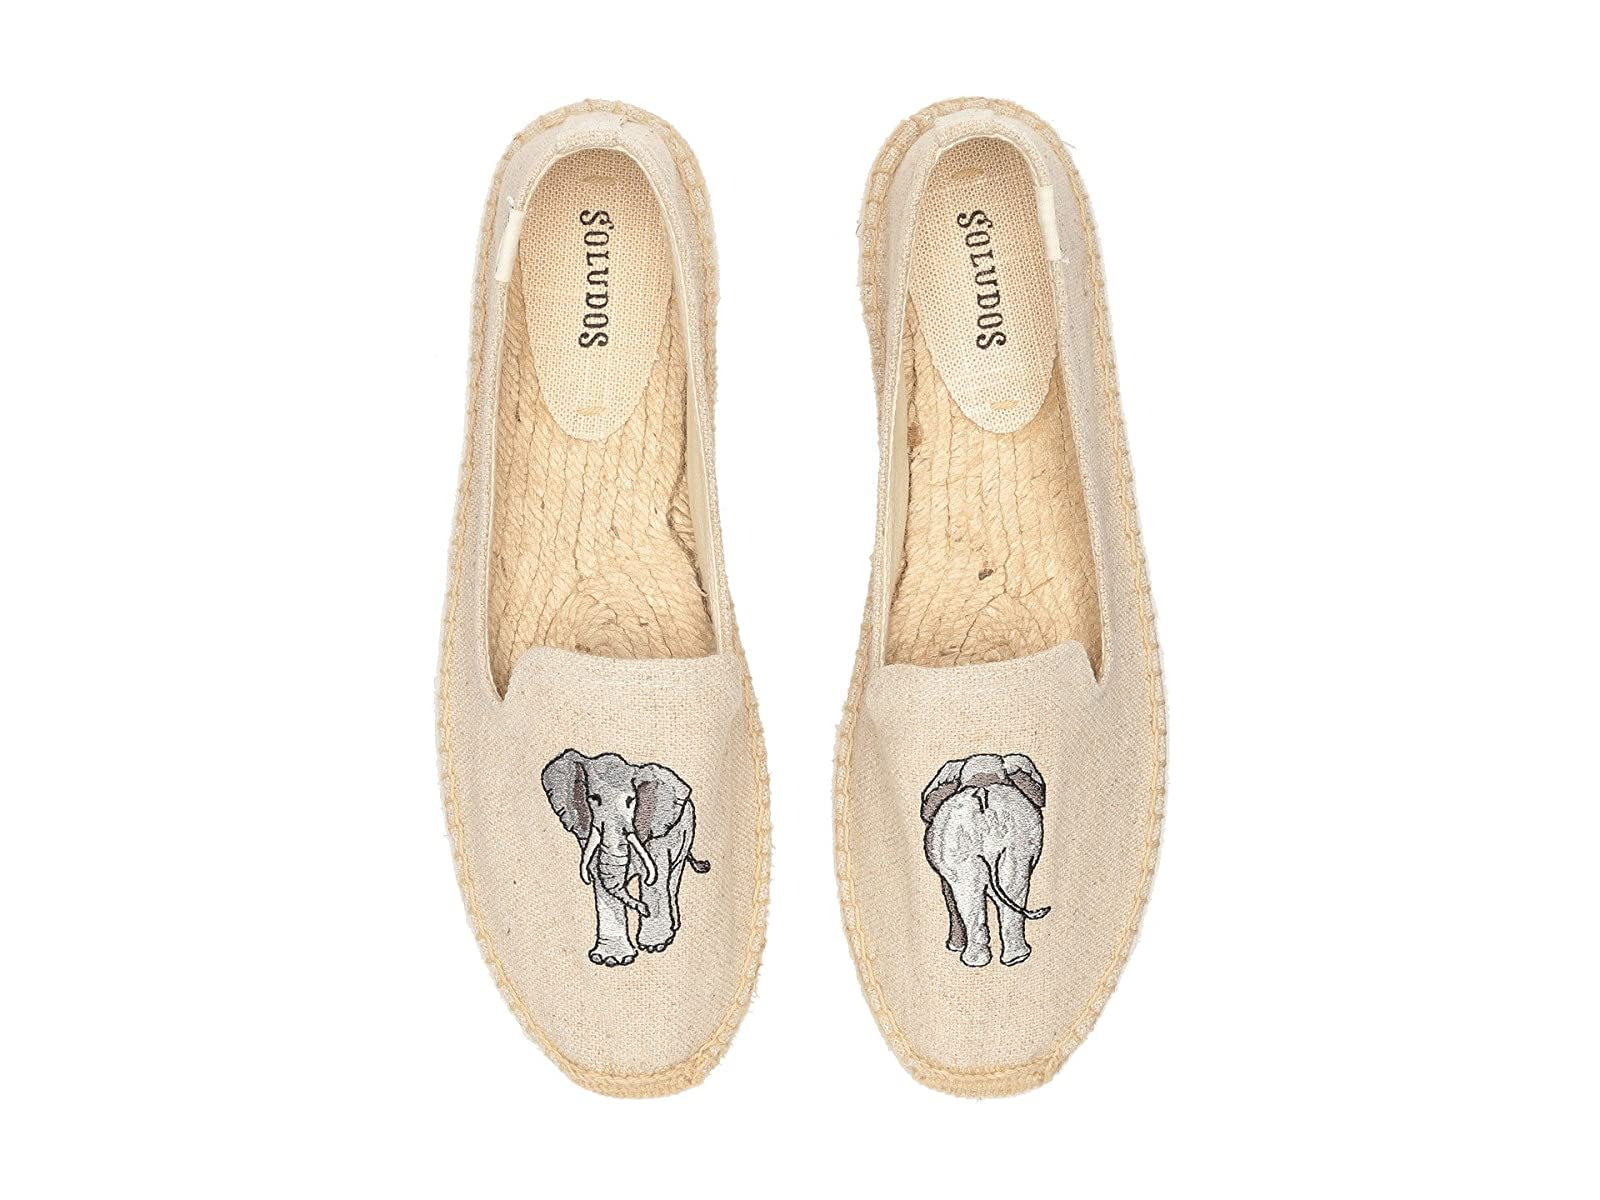 Soludos Elephant Embroidered Smoking SlipperAtmospheric grades have affordable shoes